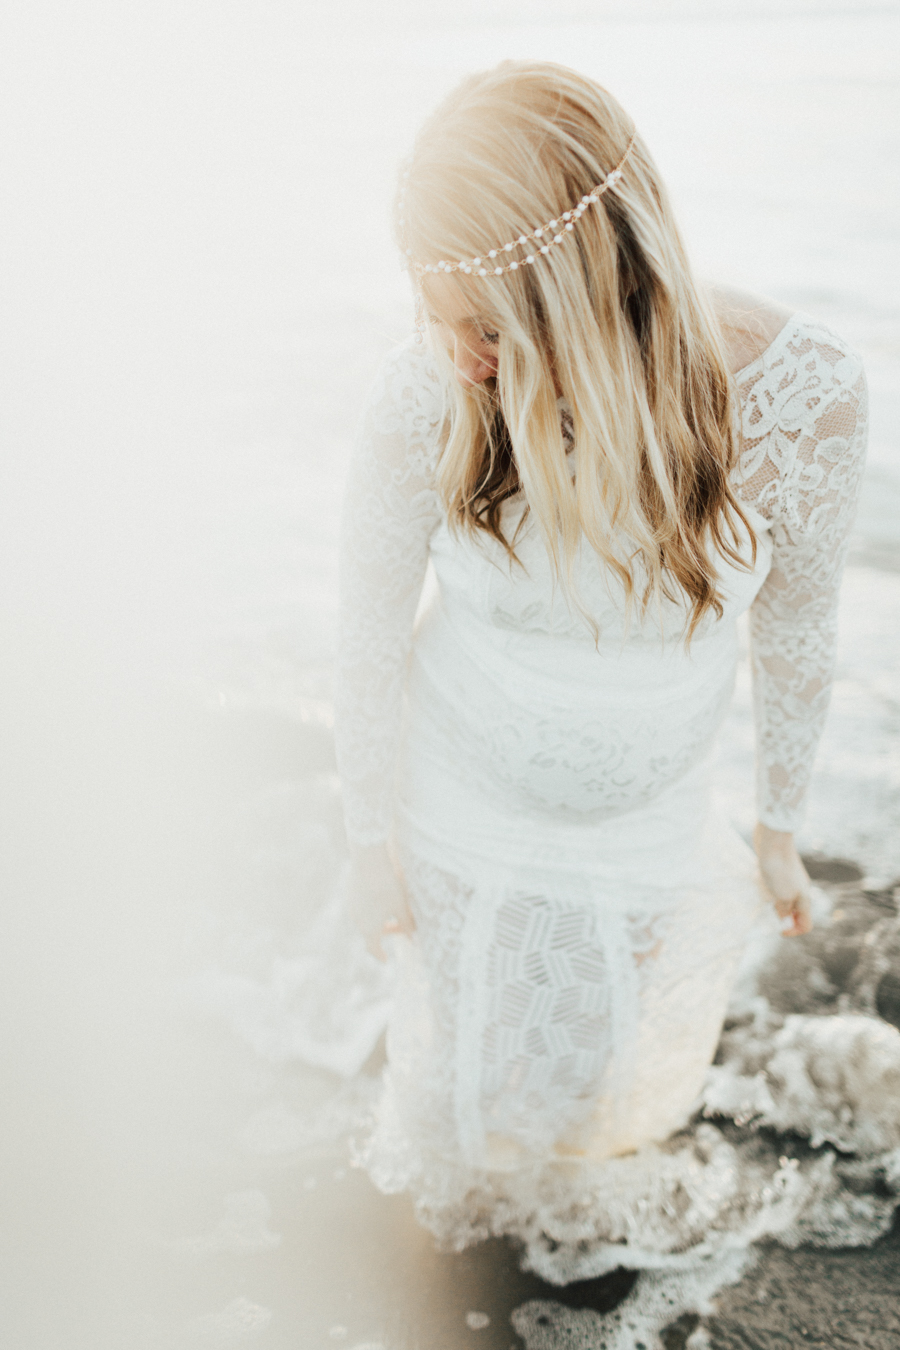 Southern California Beach Maternity Photos - Elle Lily Photography